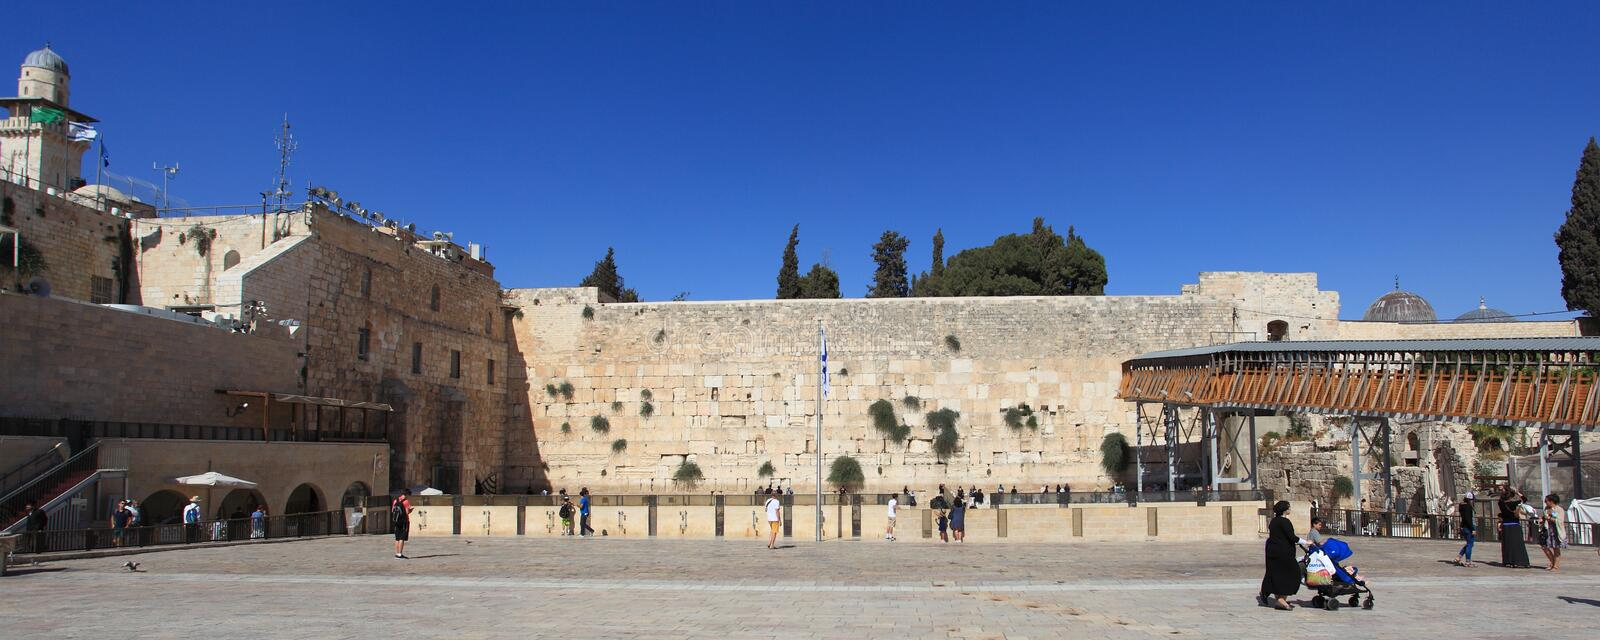 Kotel Western Wall Plaza, Jerusalem, Israel. Frontal view of the Western Wall (or Wailing Wall or Kotel) Plaza in Jerusalem, Israel. It is an ancient wall in the stock photography